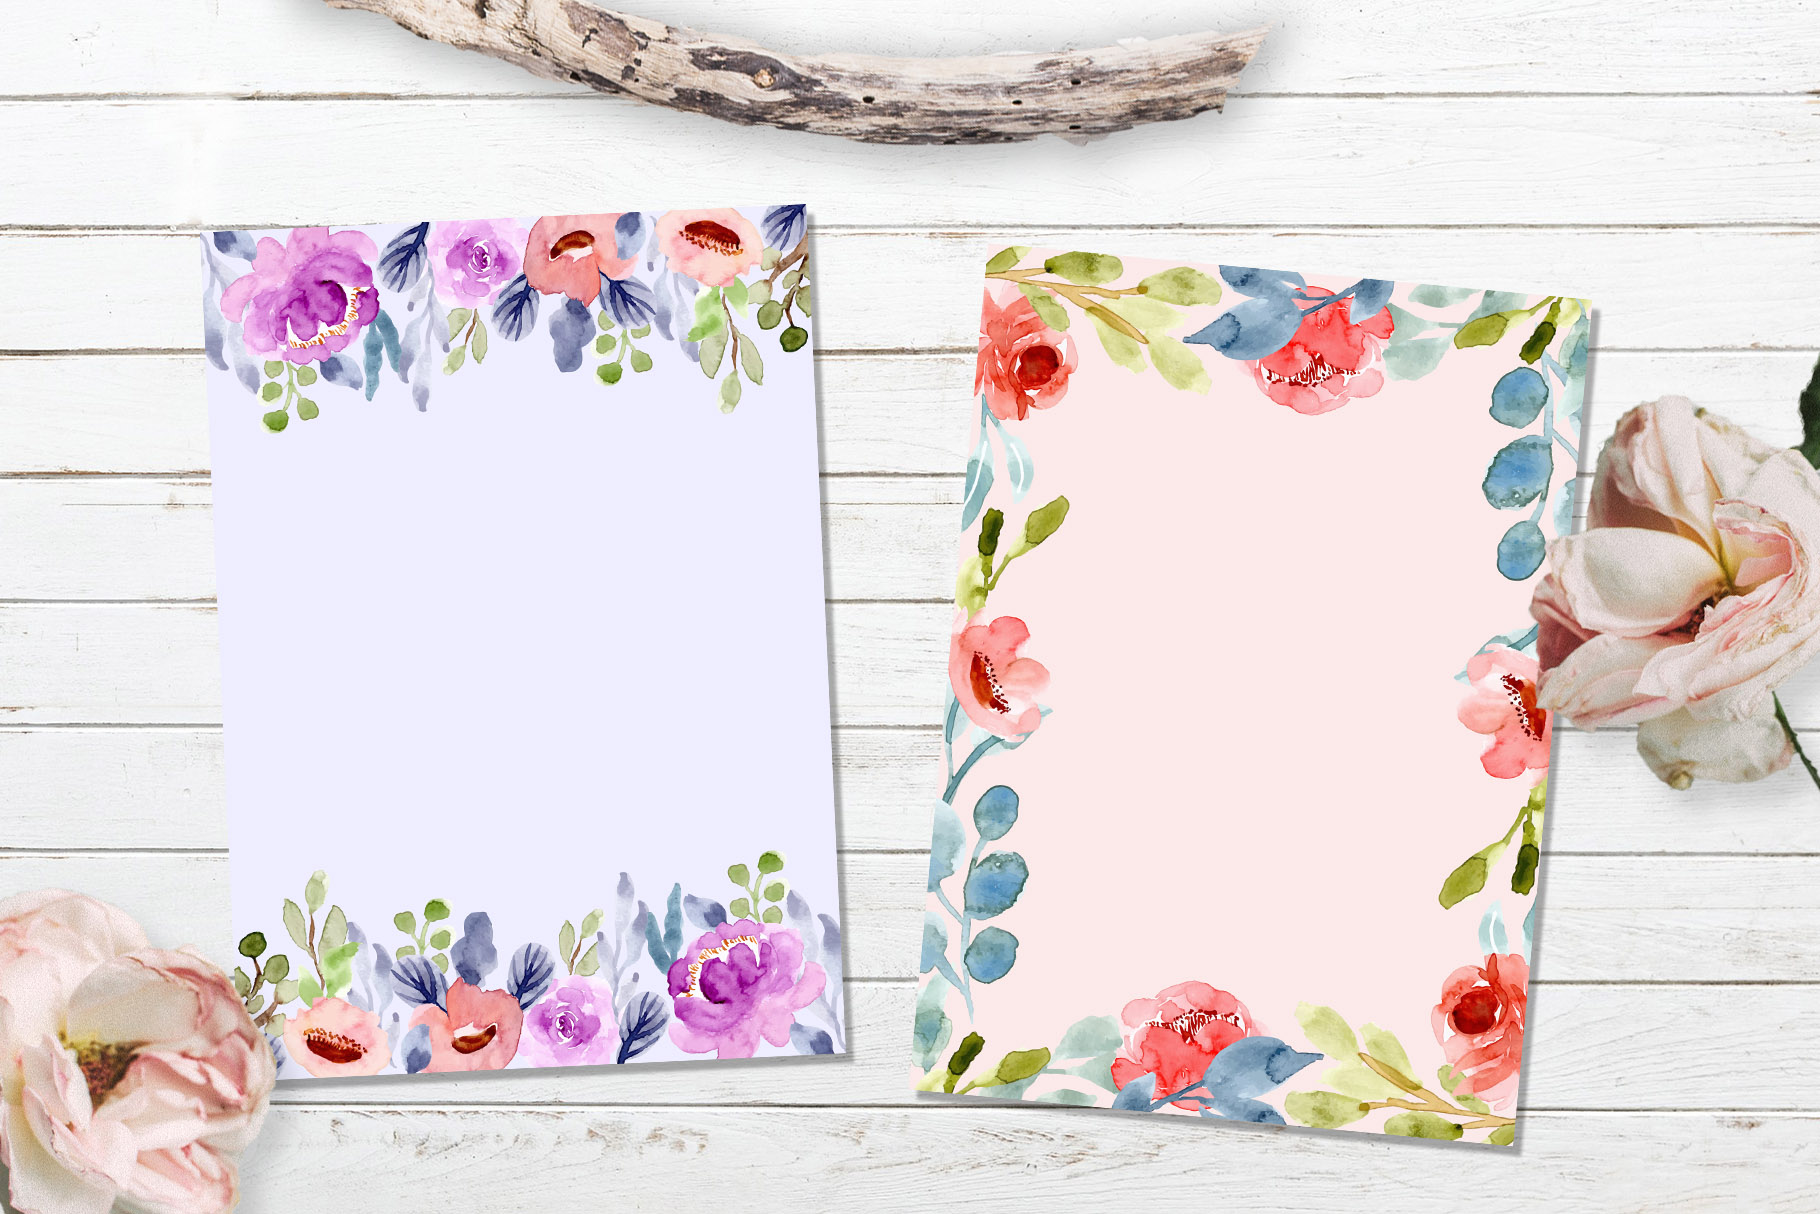 Floral Invitation Backgrounds Vol.3 example image 3